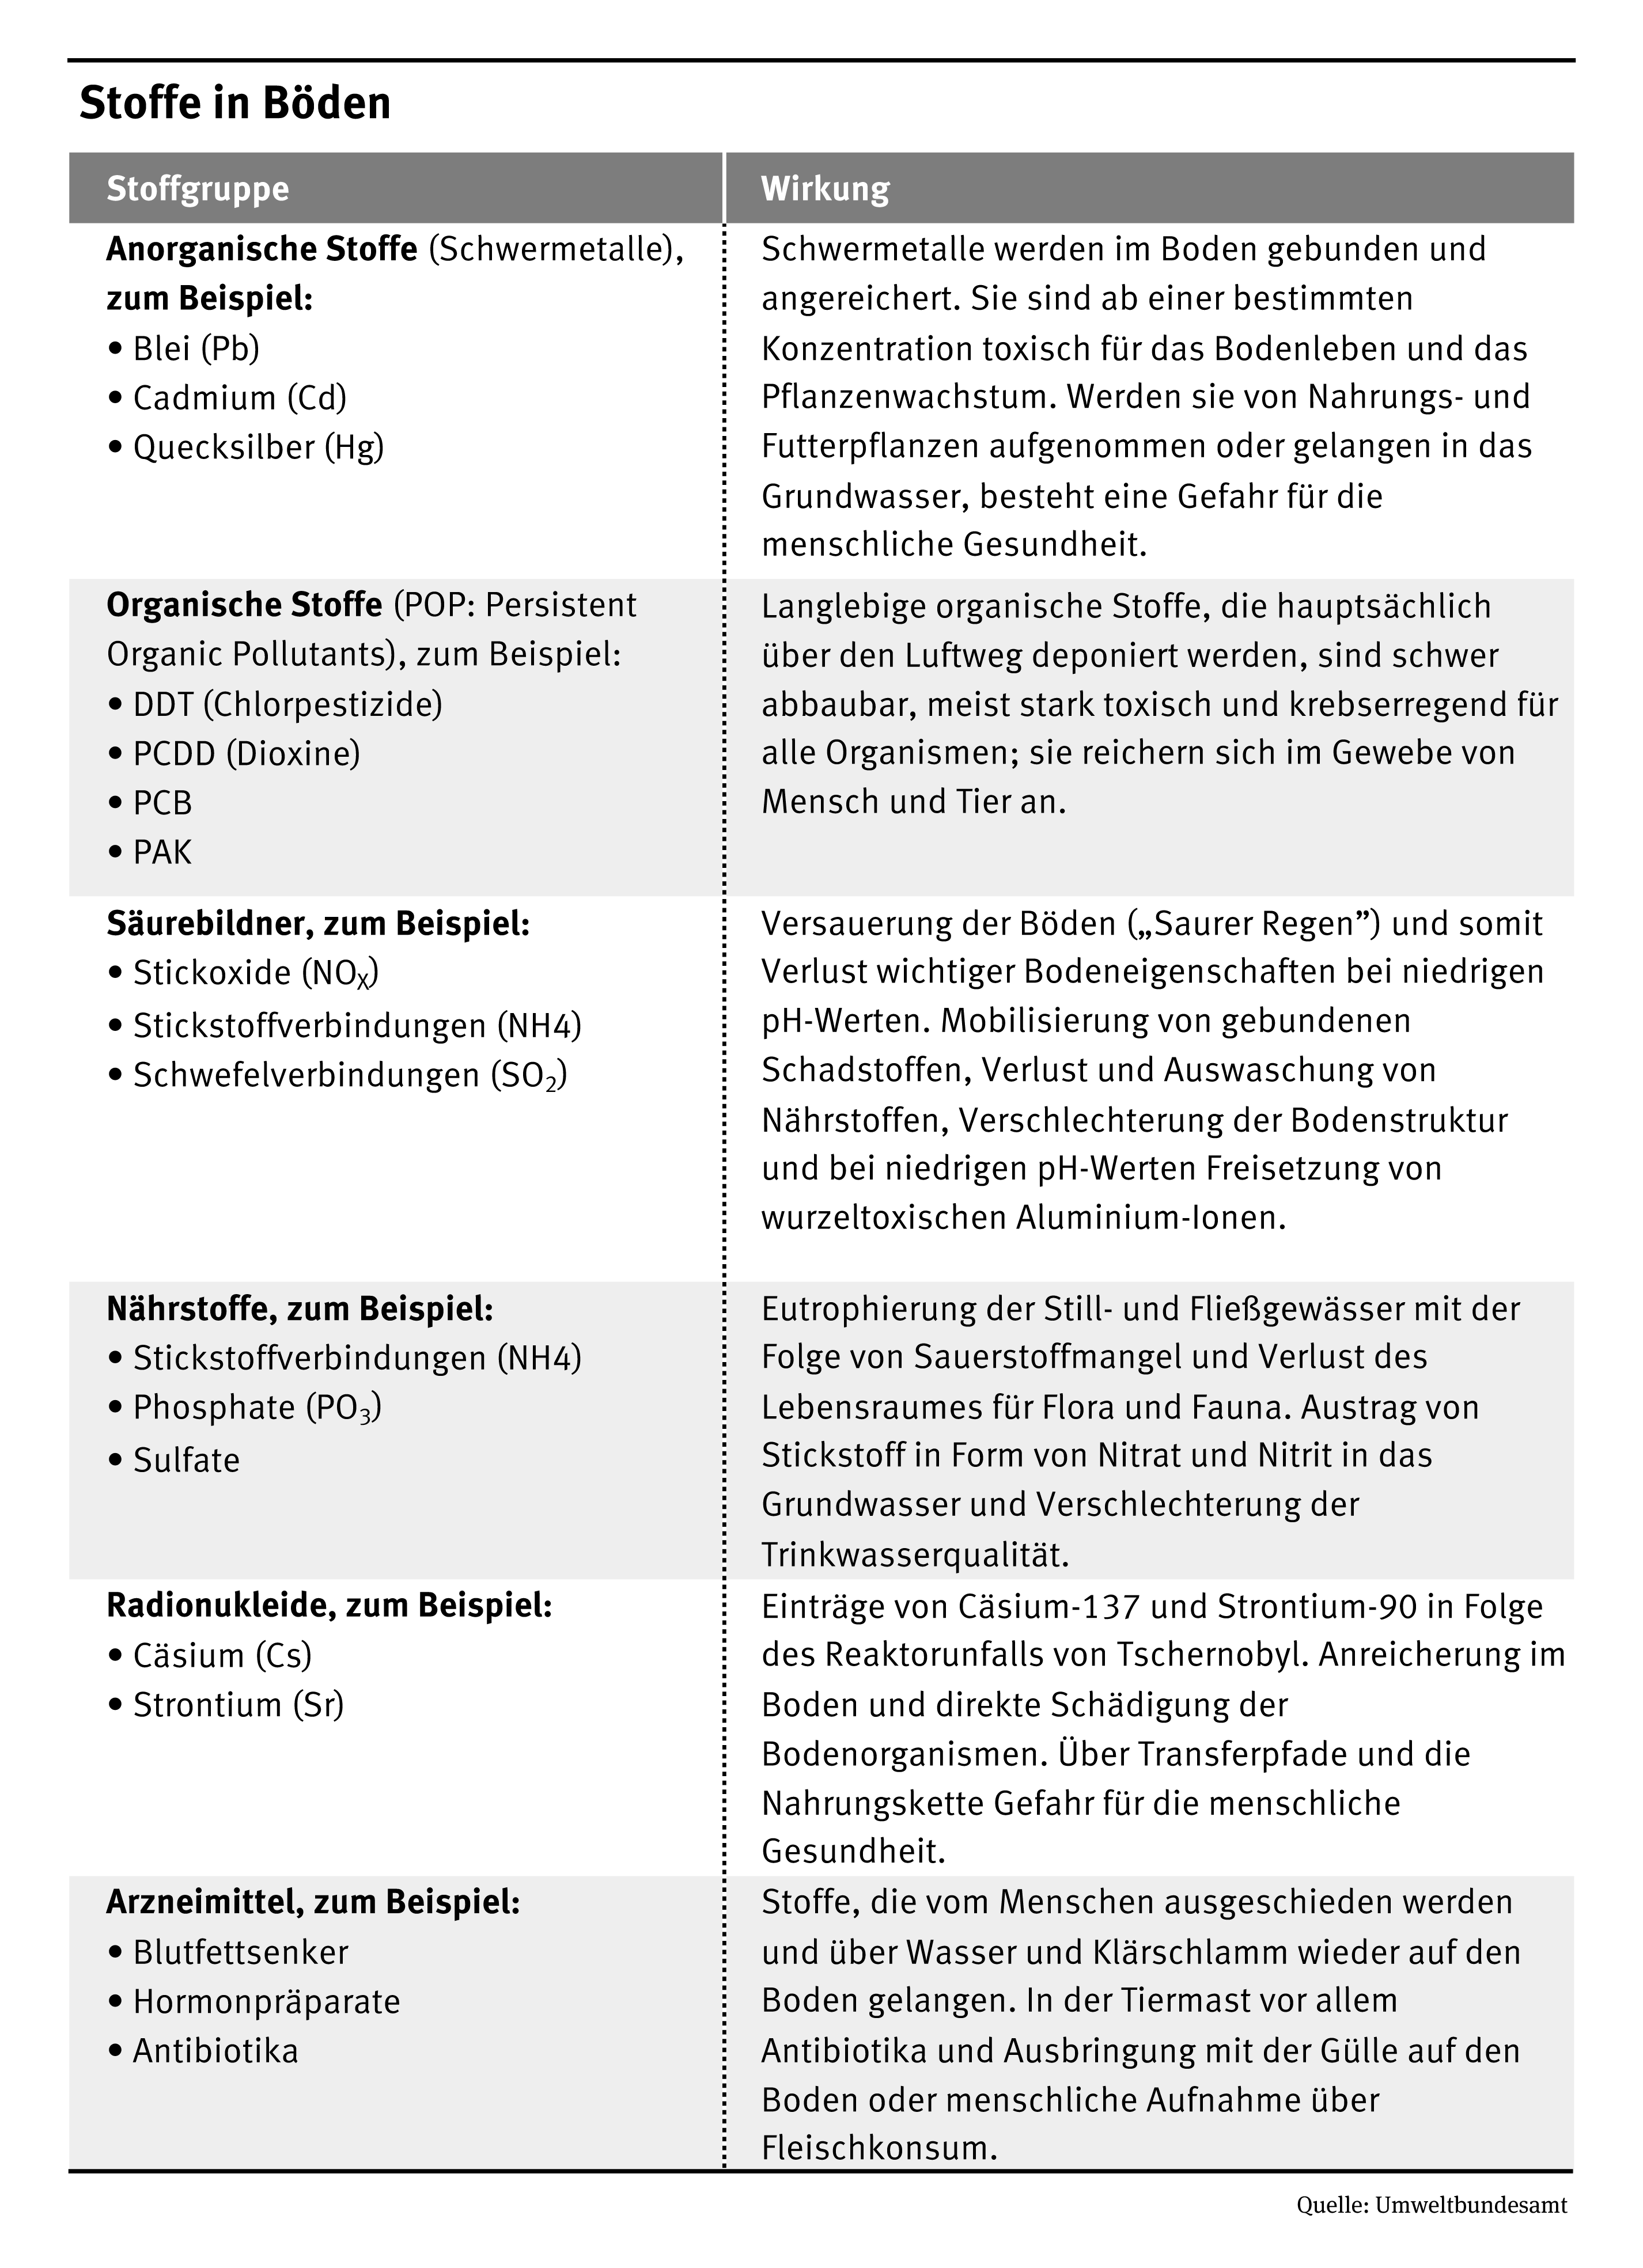 Substances in the soil umweltbundesamt for What substances are in soil